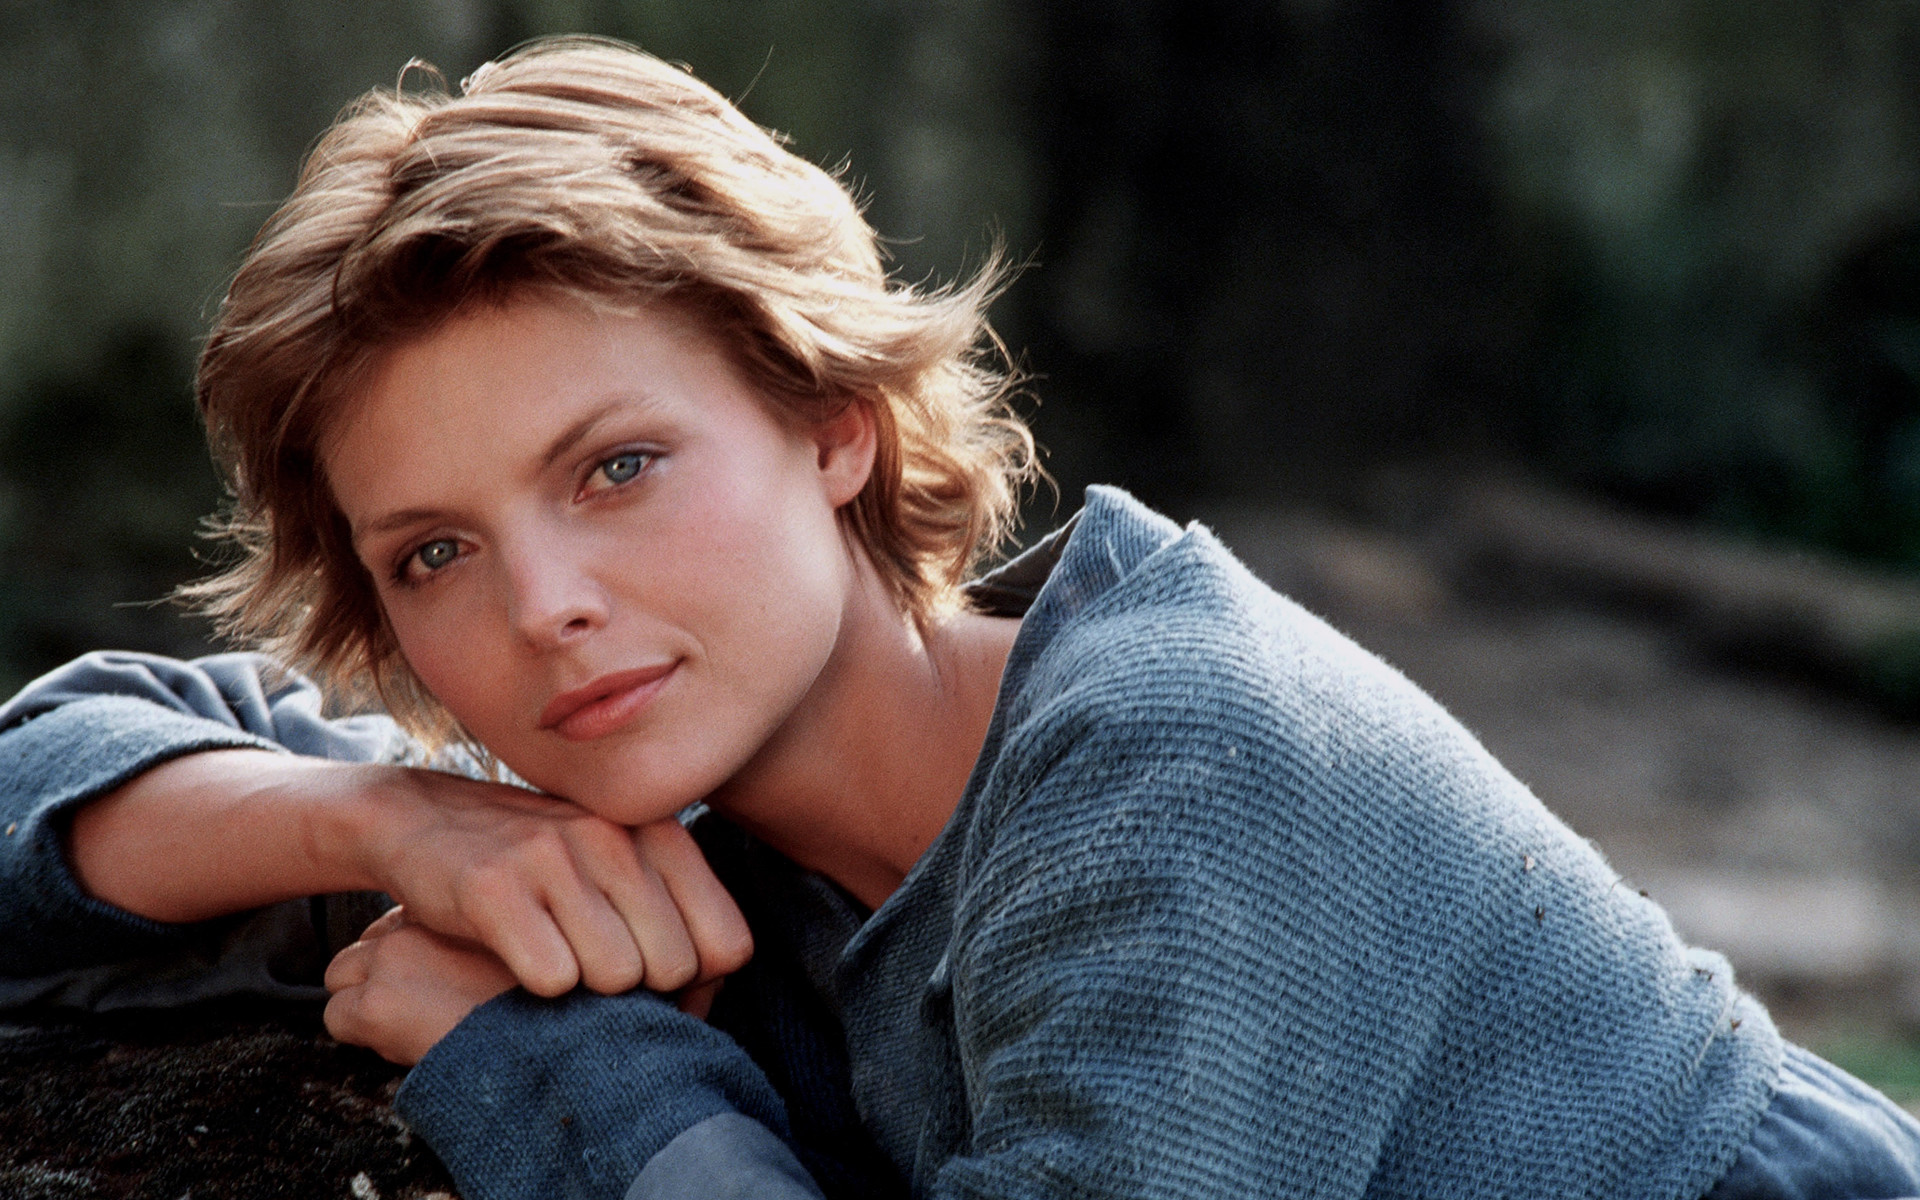 1920x1200 Michelle Pfeiffer Hot HD Wallpapers, Sexy HD Images, Pictures